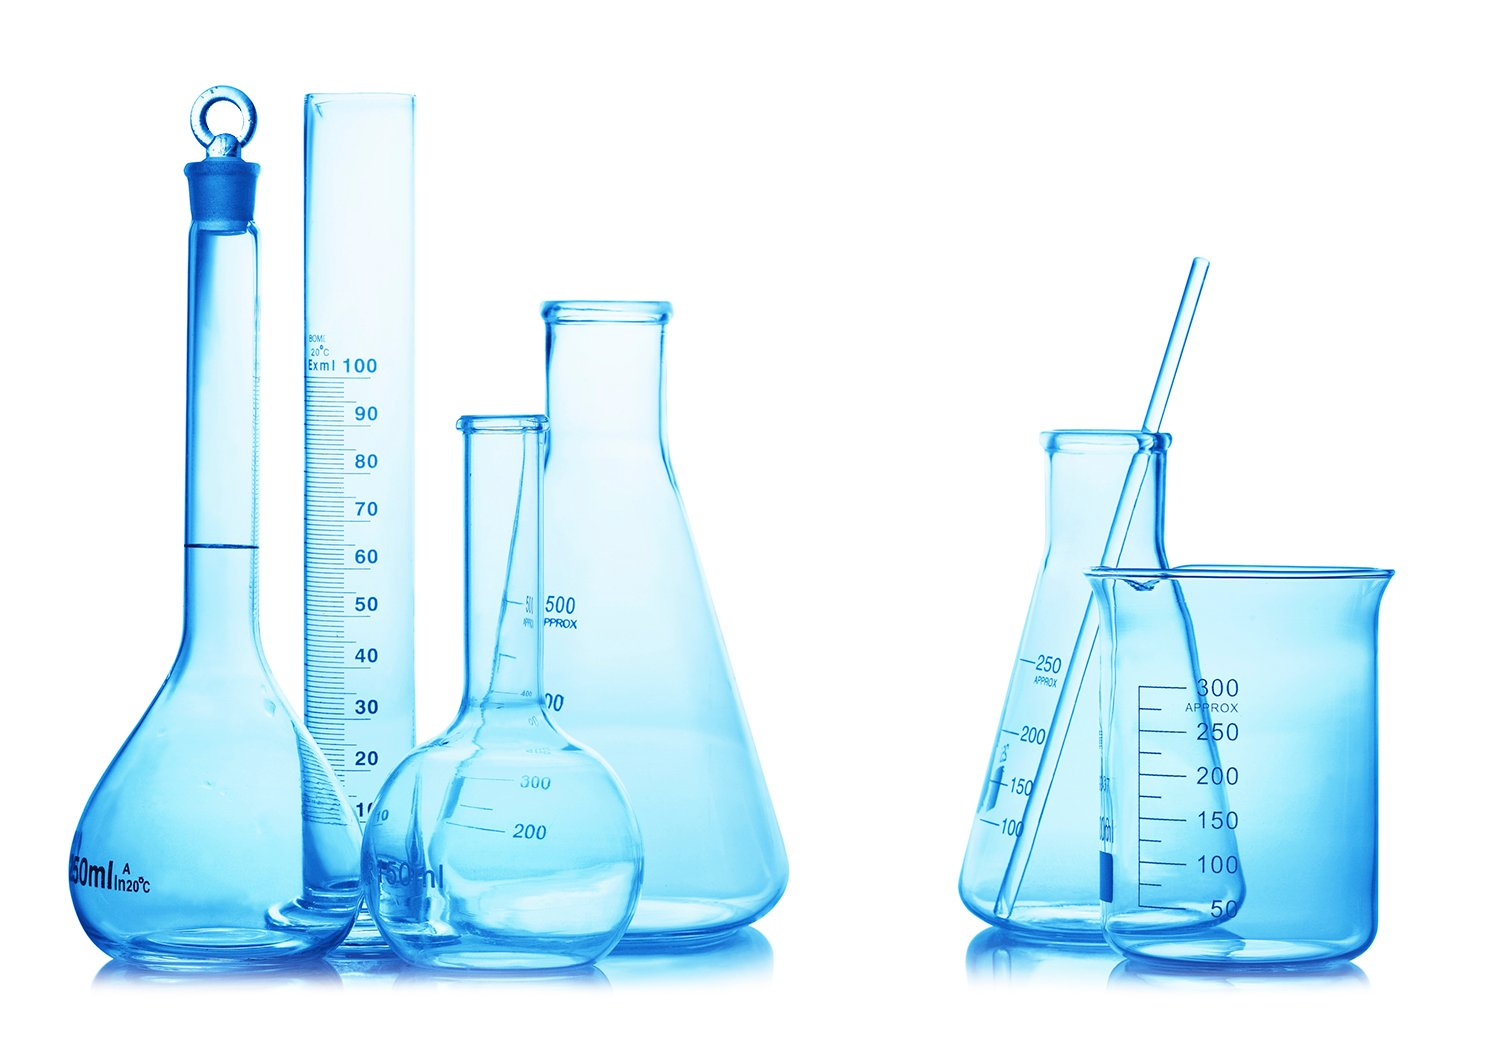 Scientific or medical glassware